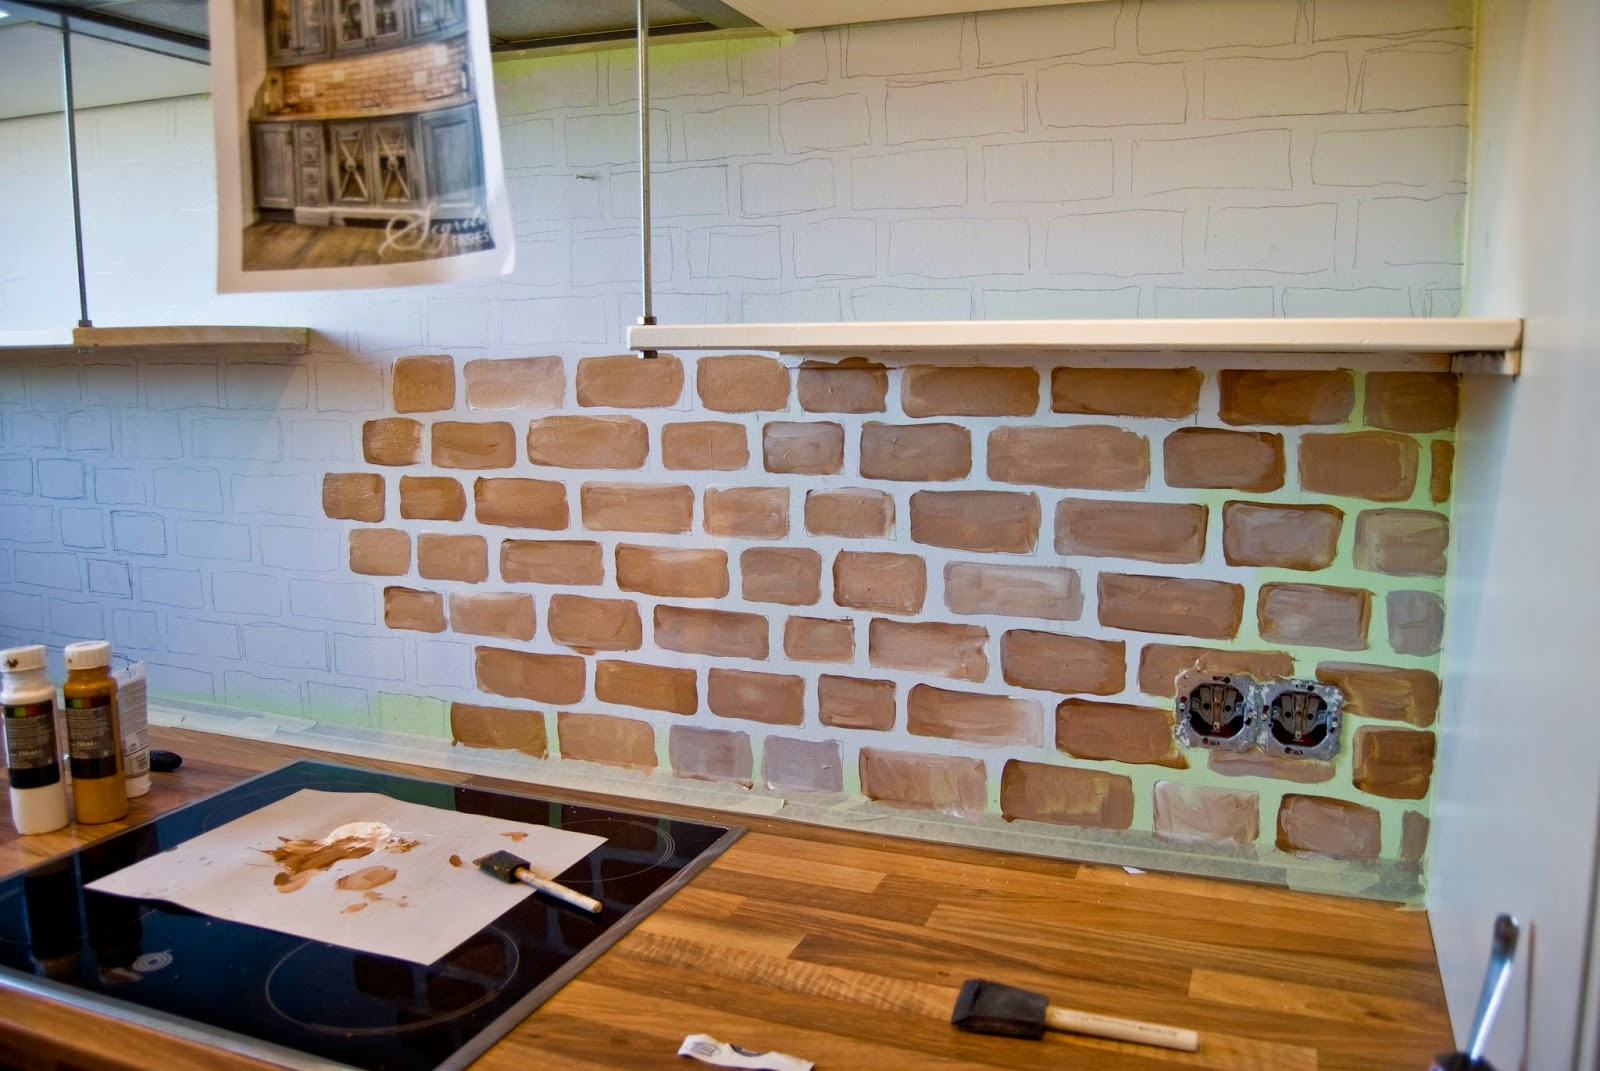 Backsplash Paint Ideas remodelaholic | tiny kitchen renovation with faux painted brick